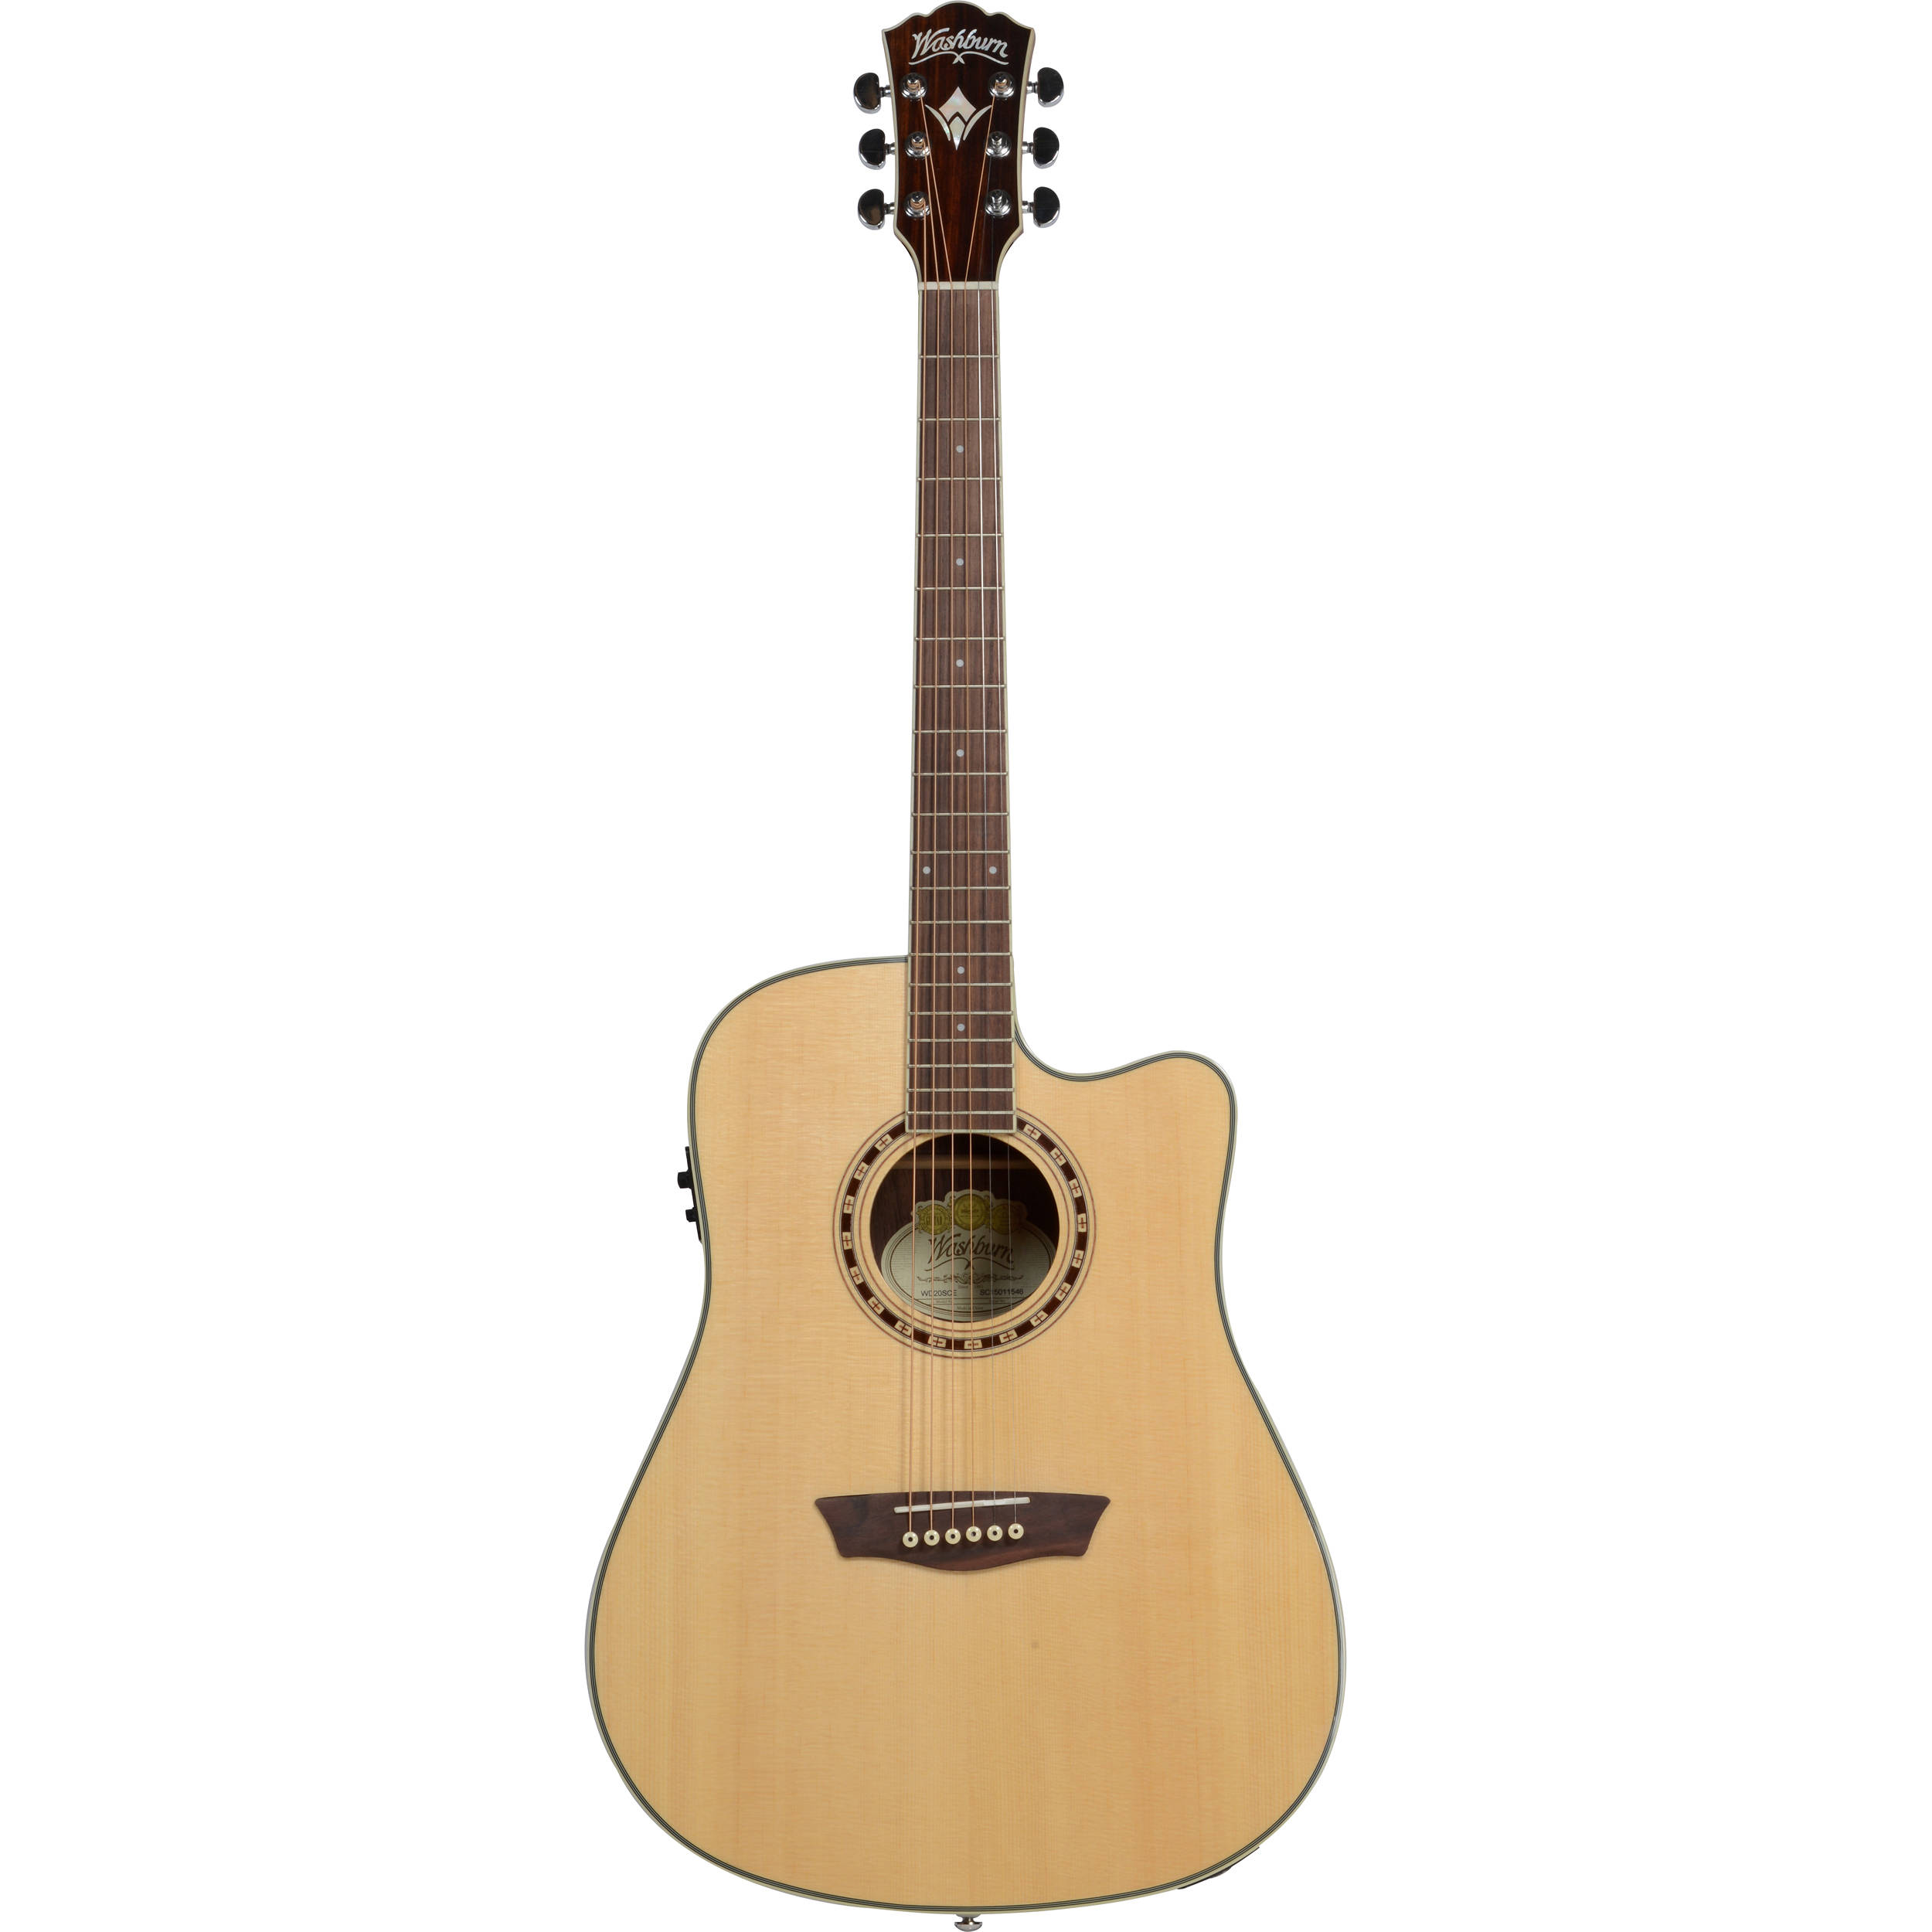 washburn heritage 20 series wd20sce acoustic electric wd20sce. Black Bedroom Furniture Sets. Home Design Ideas